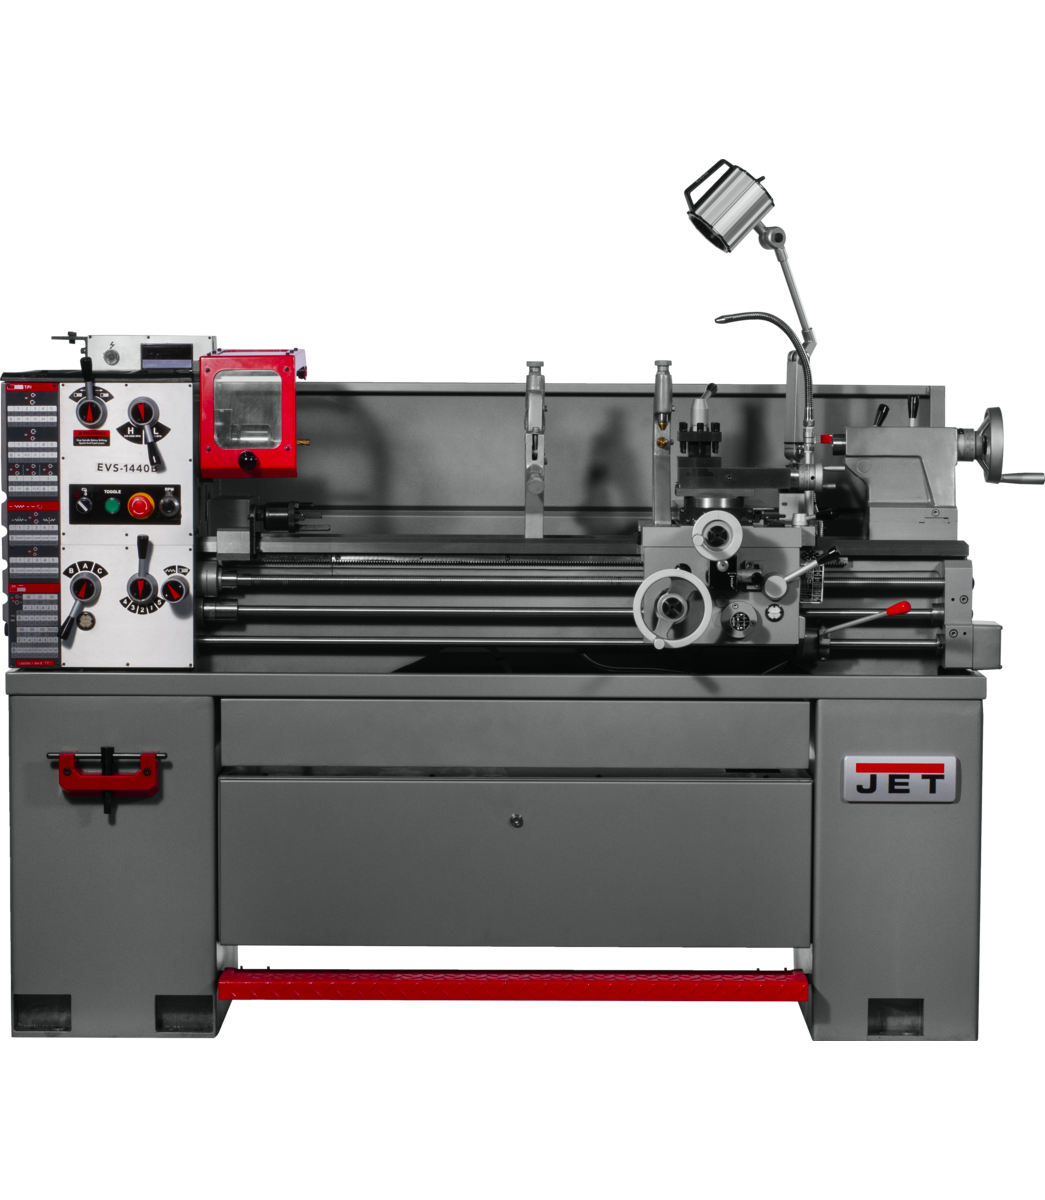 EVS-1440 Electronic Variable Speed lathe with Newall DP700 DRO,3HP